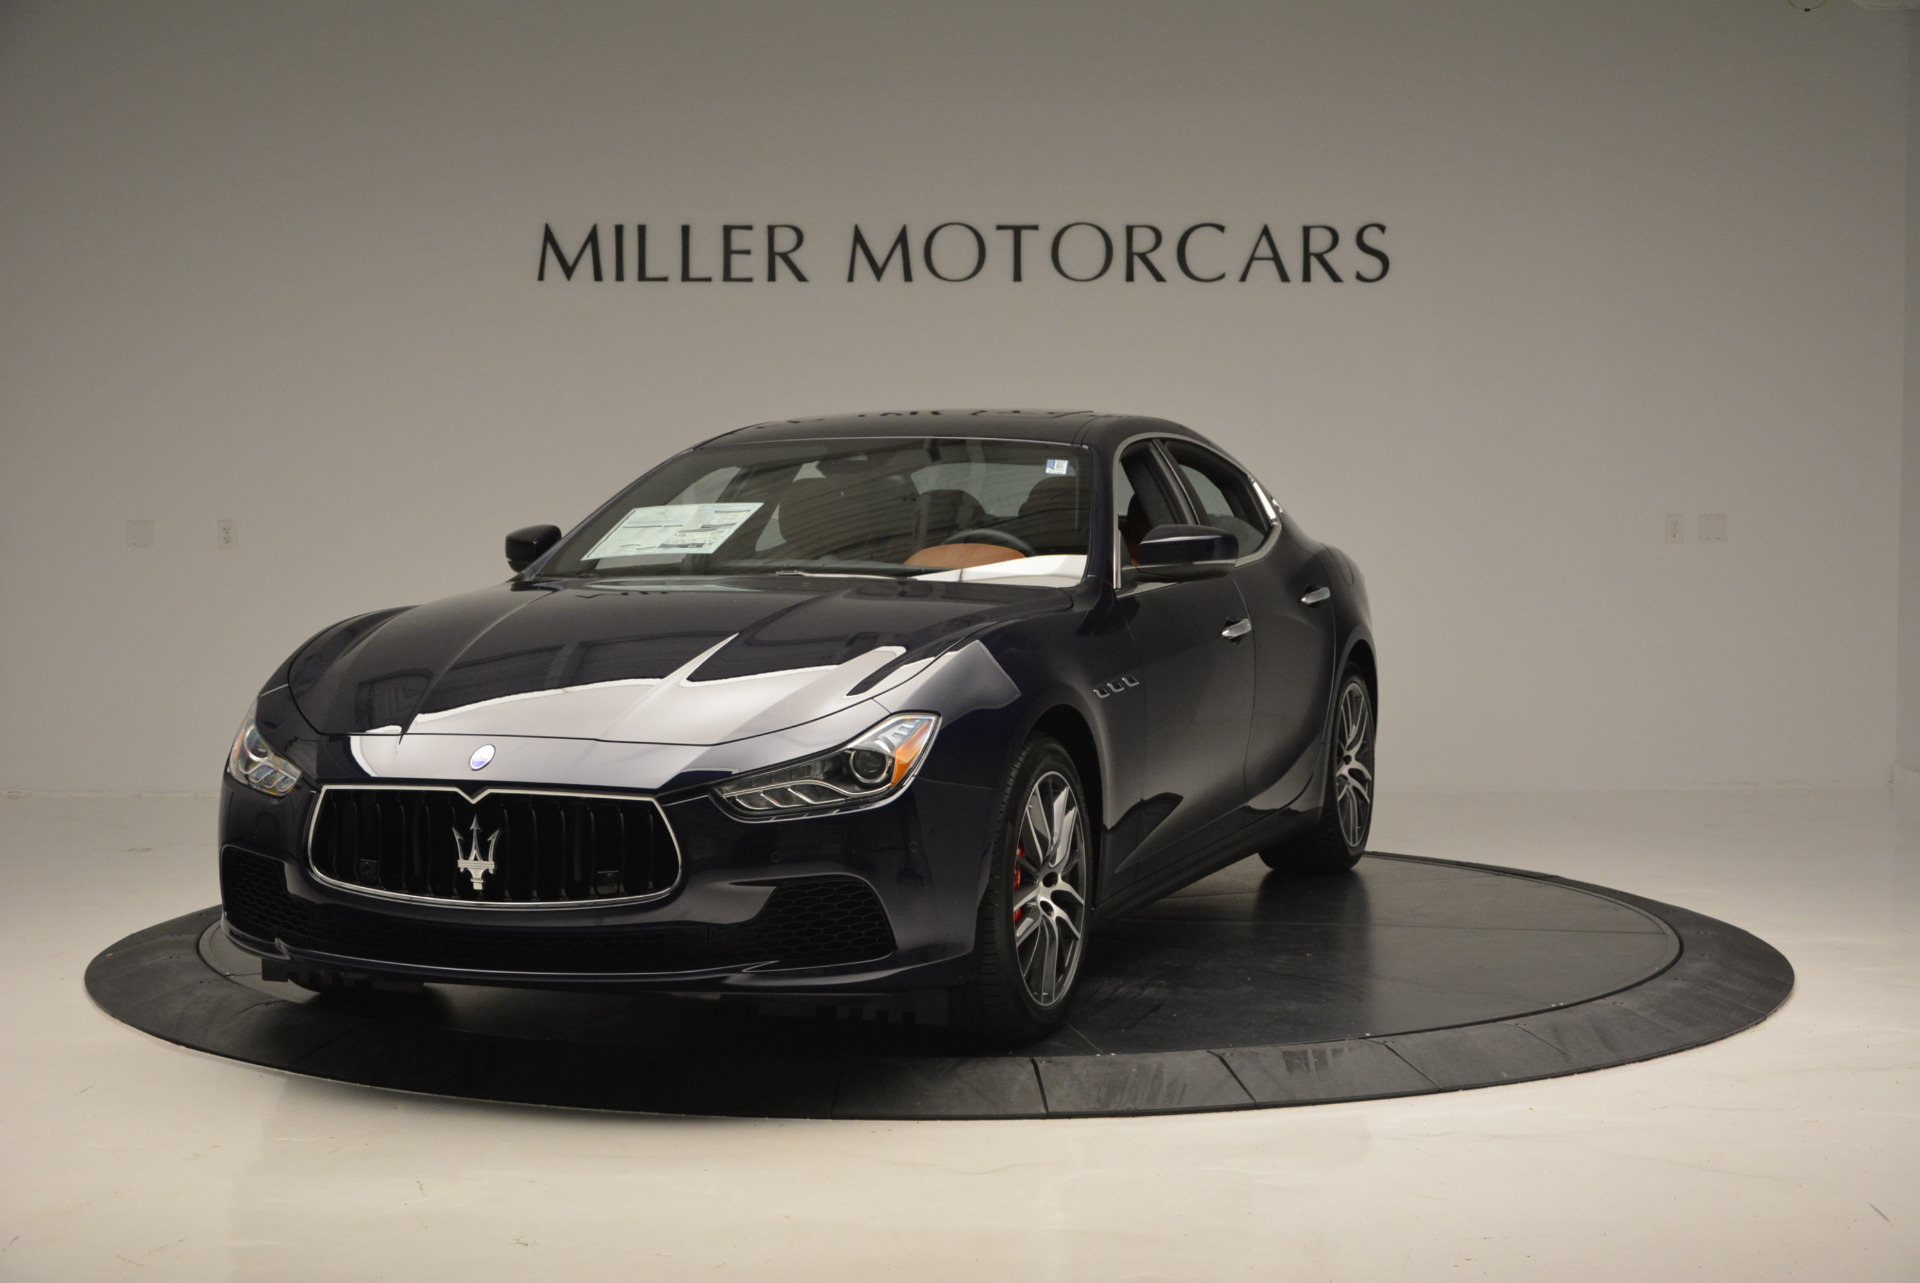 Used 2017 Maserati Ghibli S Q4 - EX Loaner for sale Sold at Aston Martin of Greenwich in Greenwich CT 06830 1